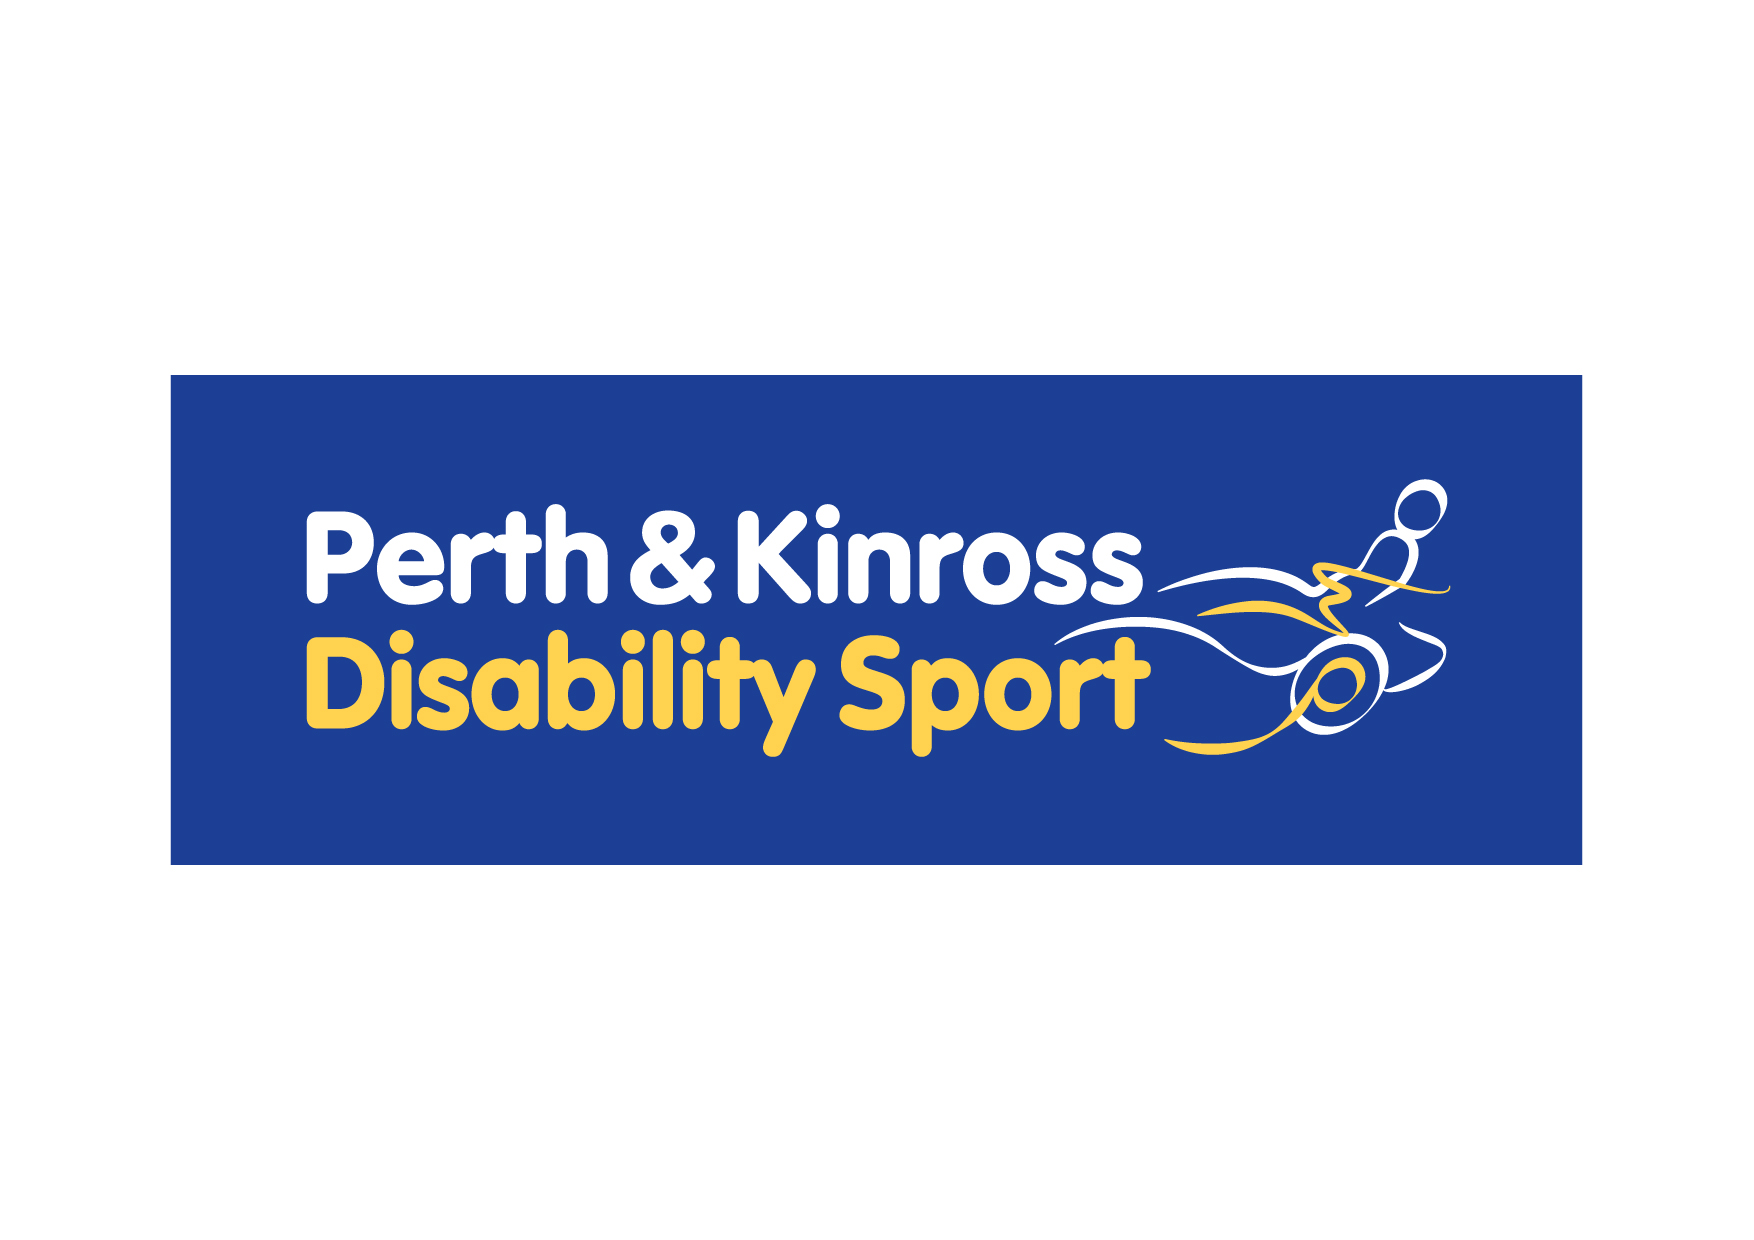 Perth and Kinross seek Chairperson and Trustee Members